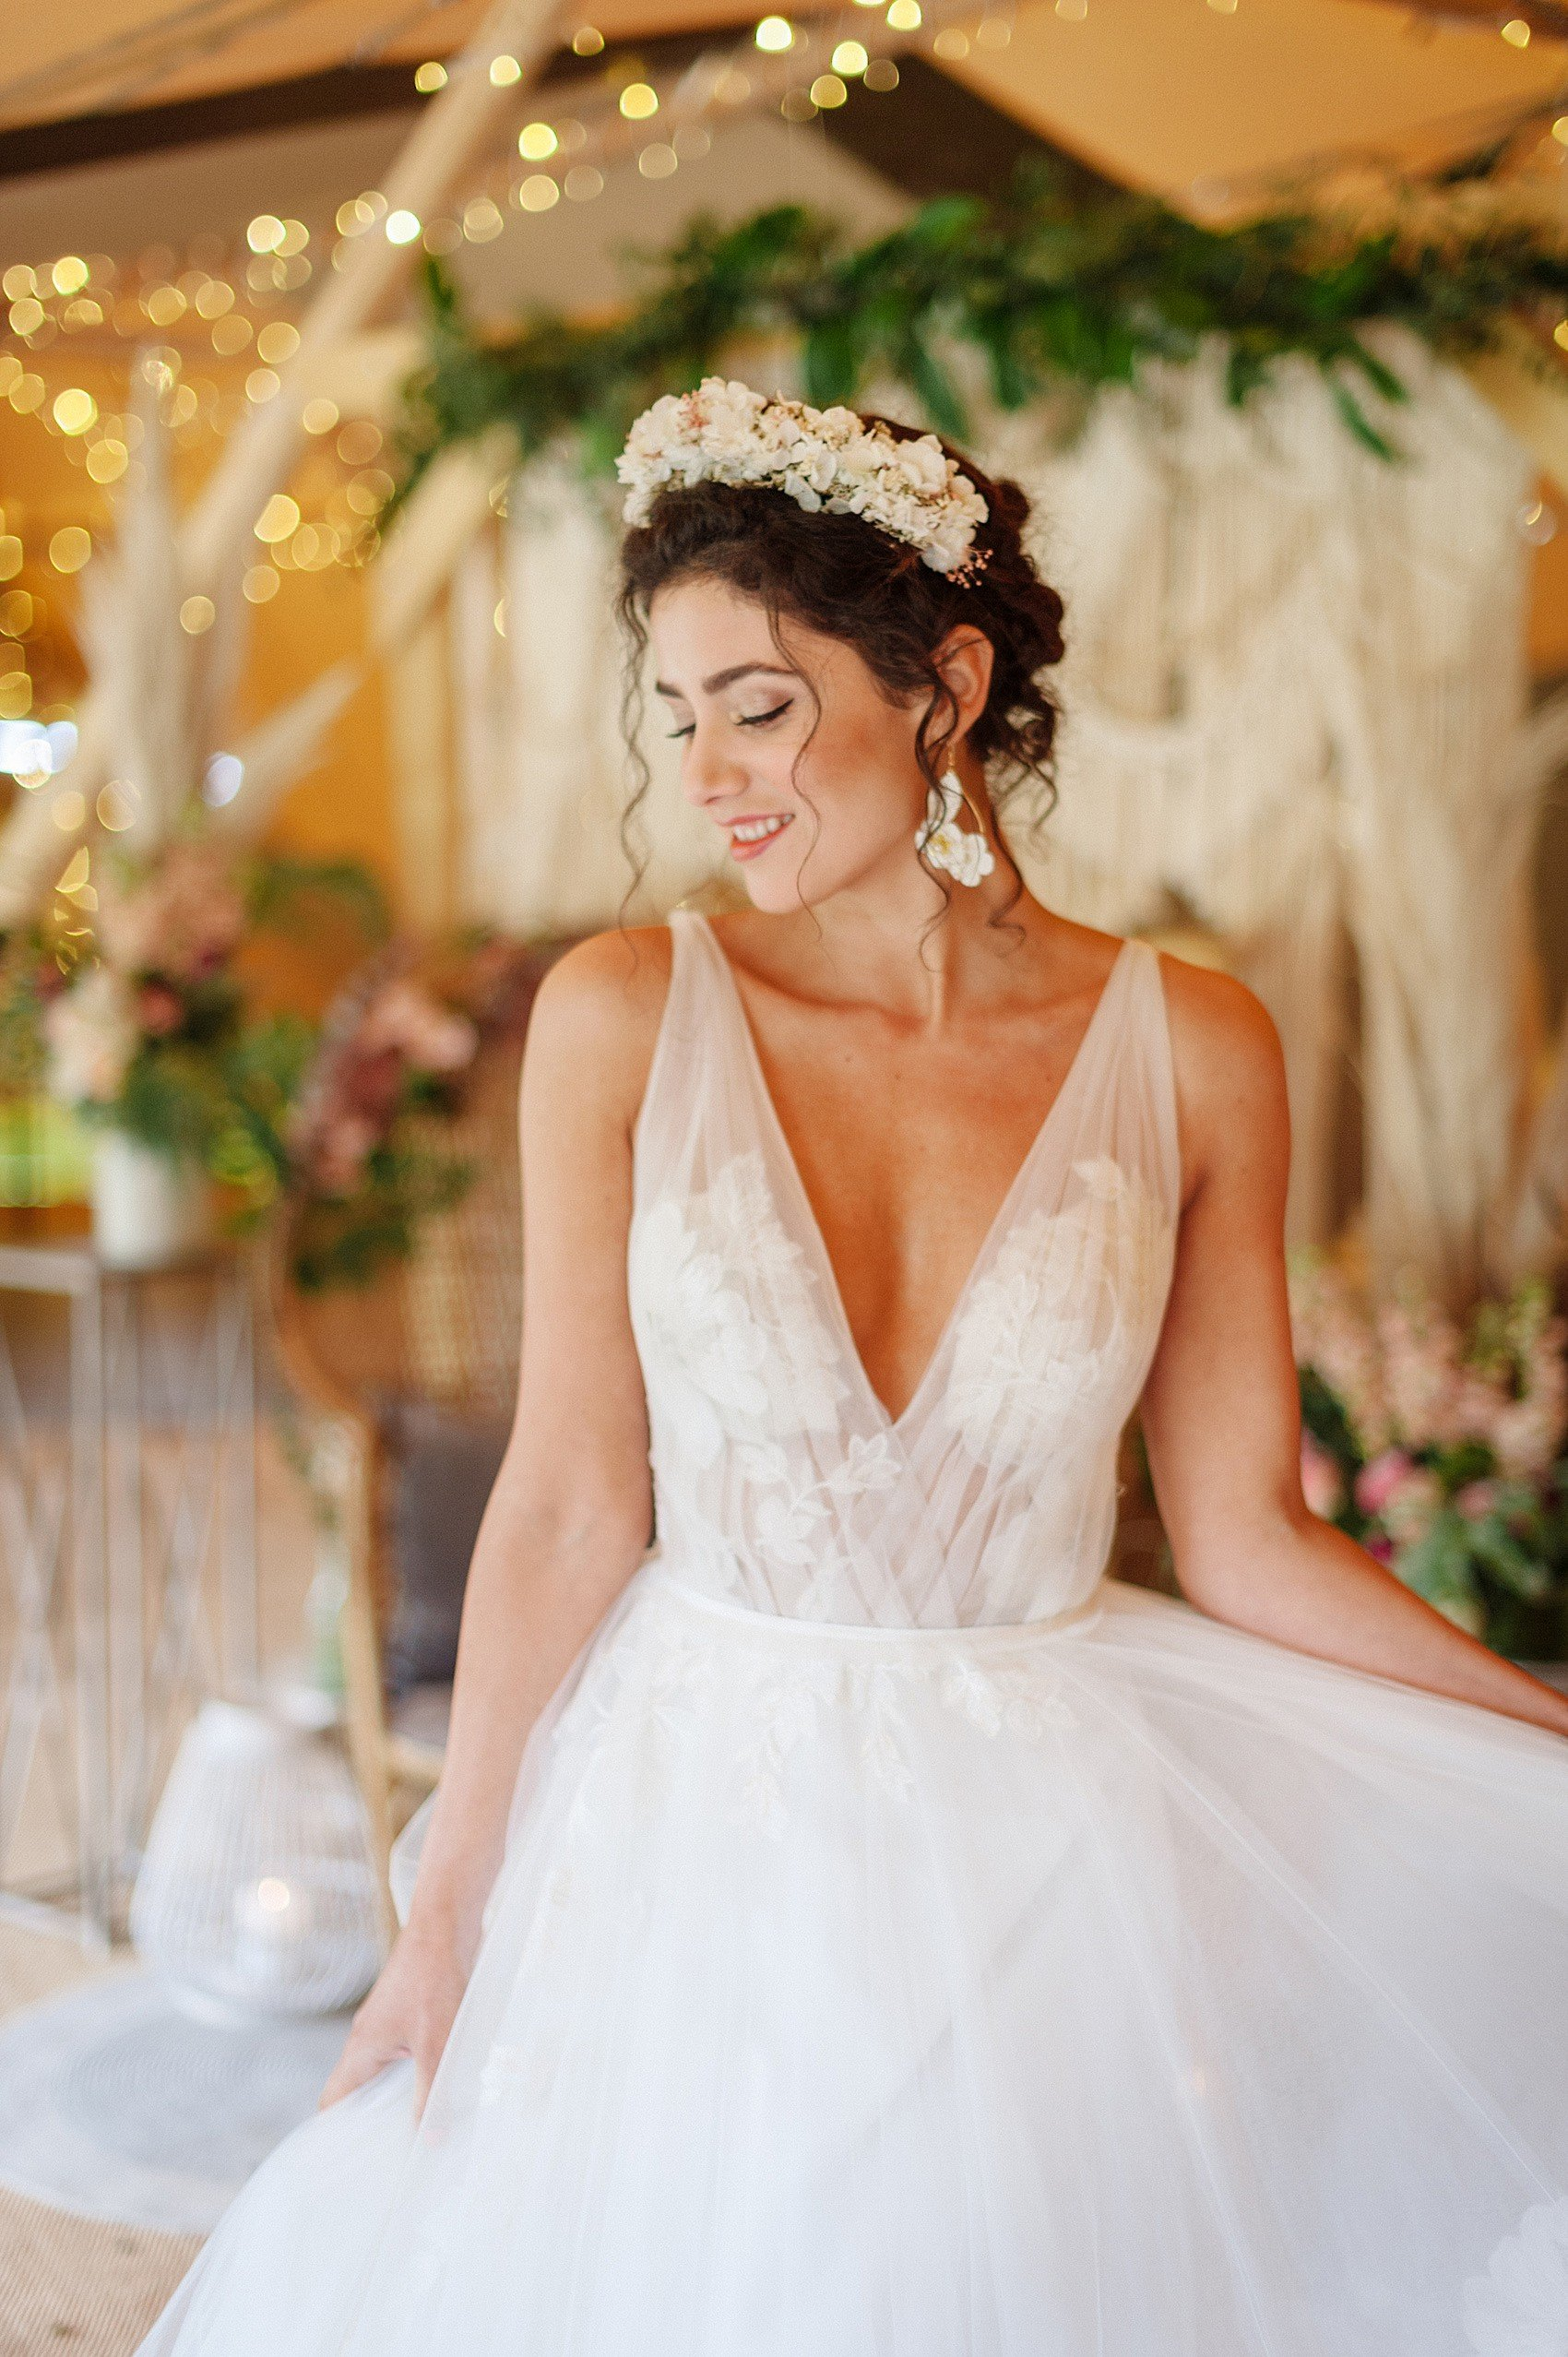 Boho Bride Wedding Inspiration | Flamboyant Invites